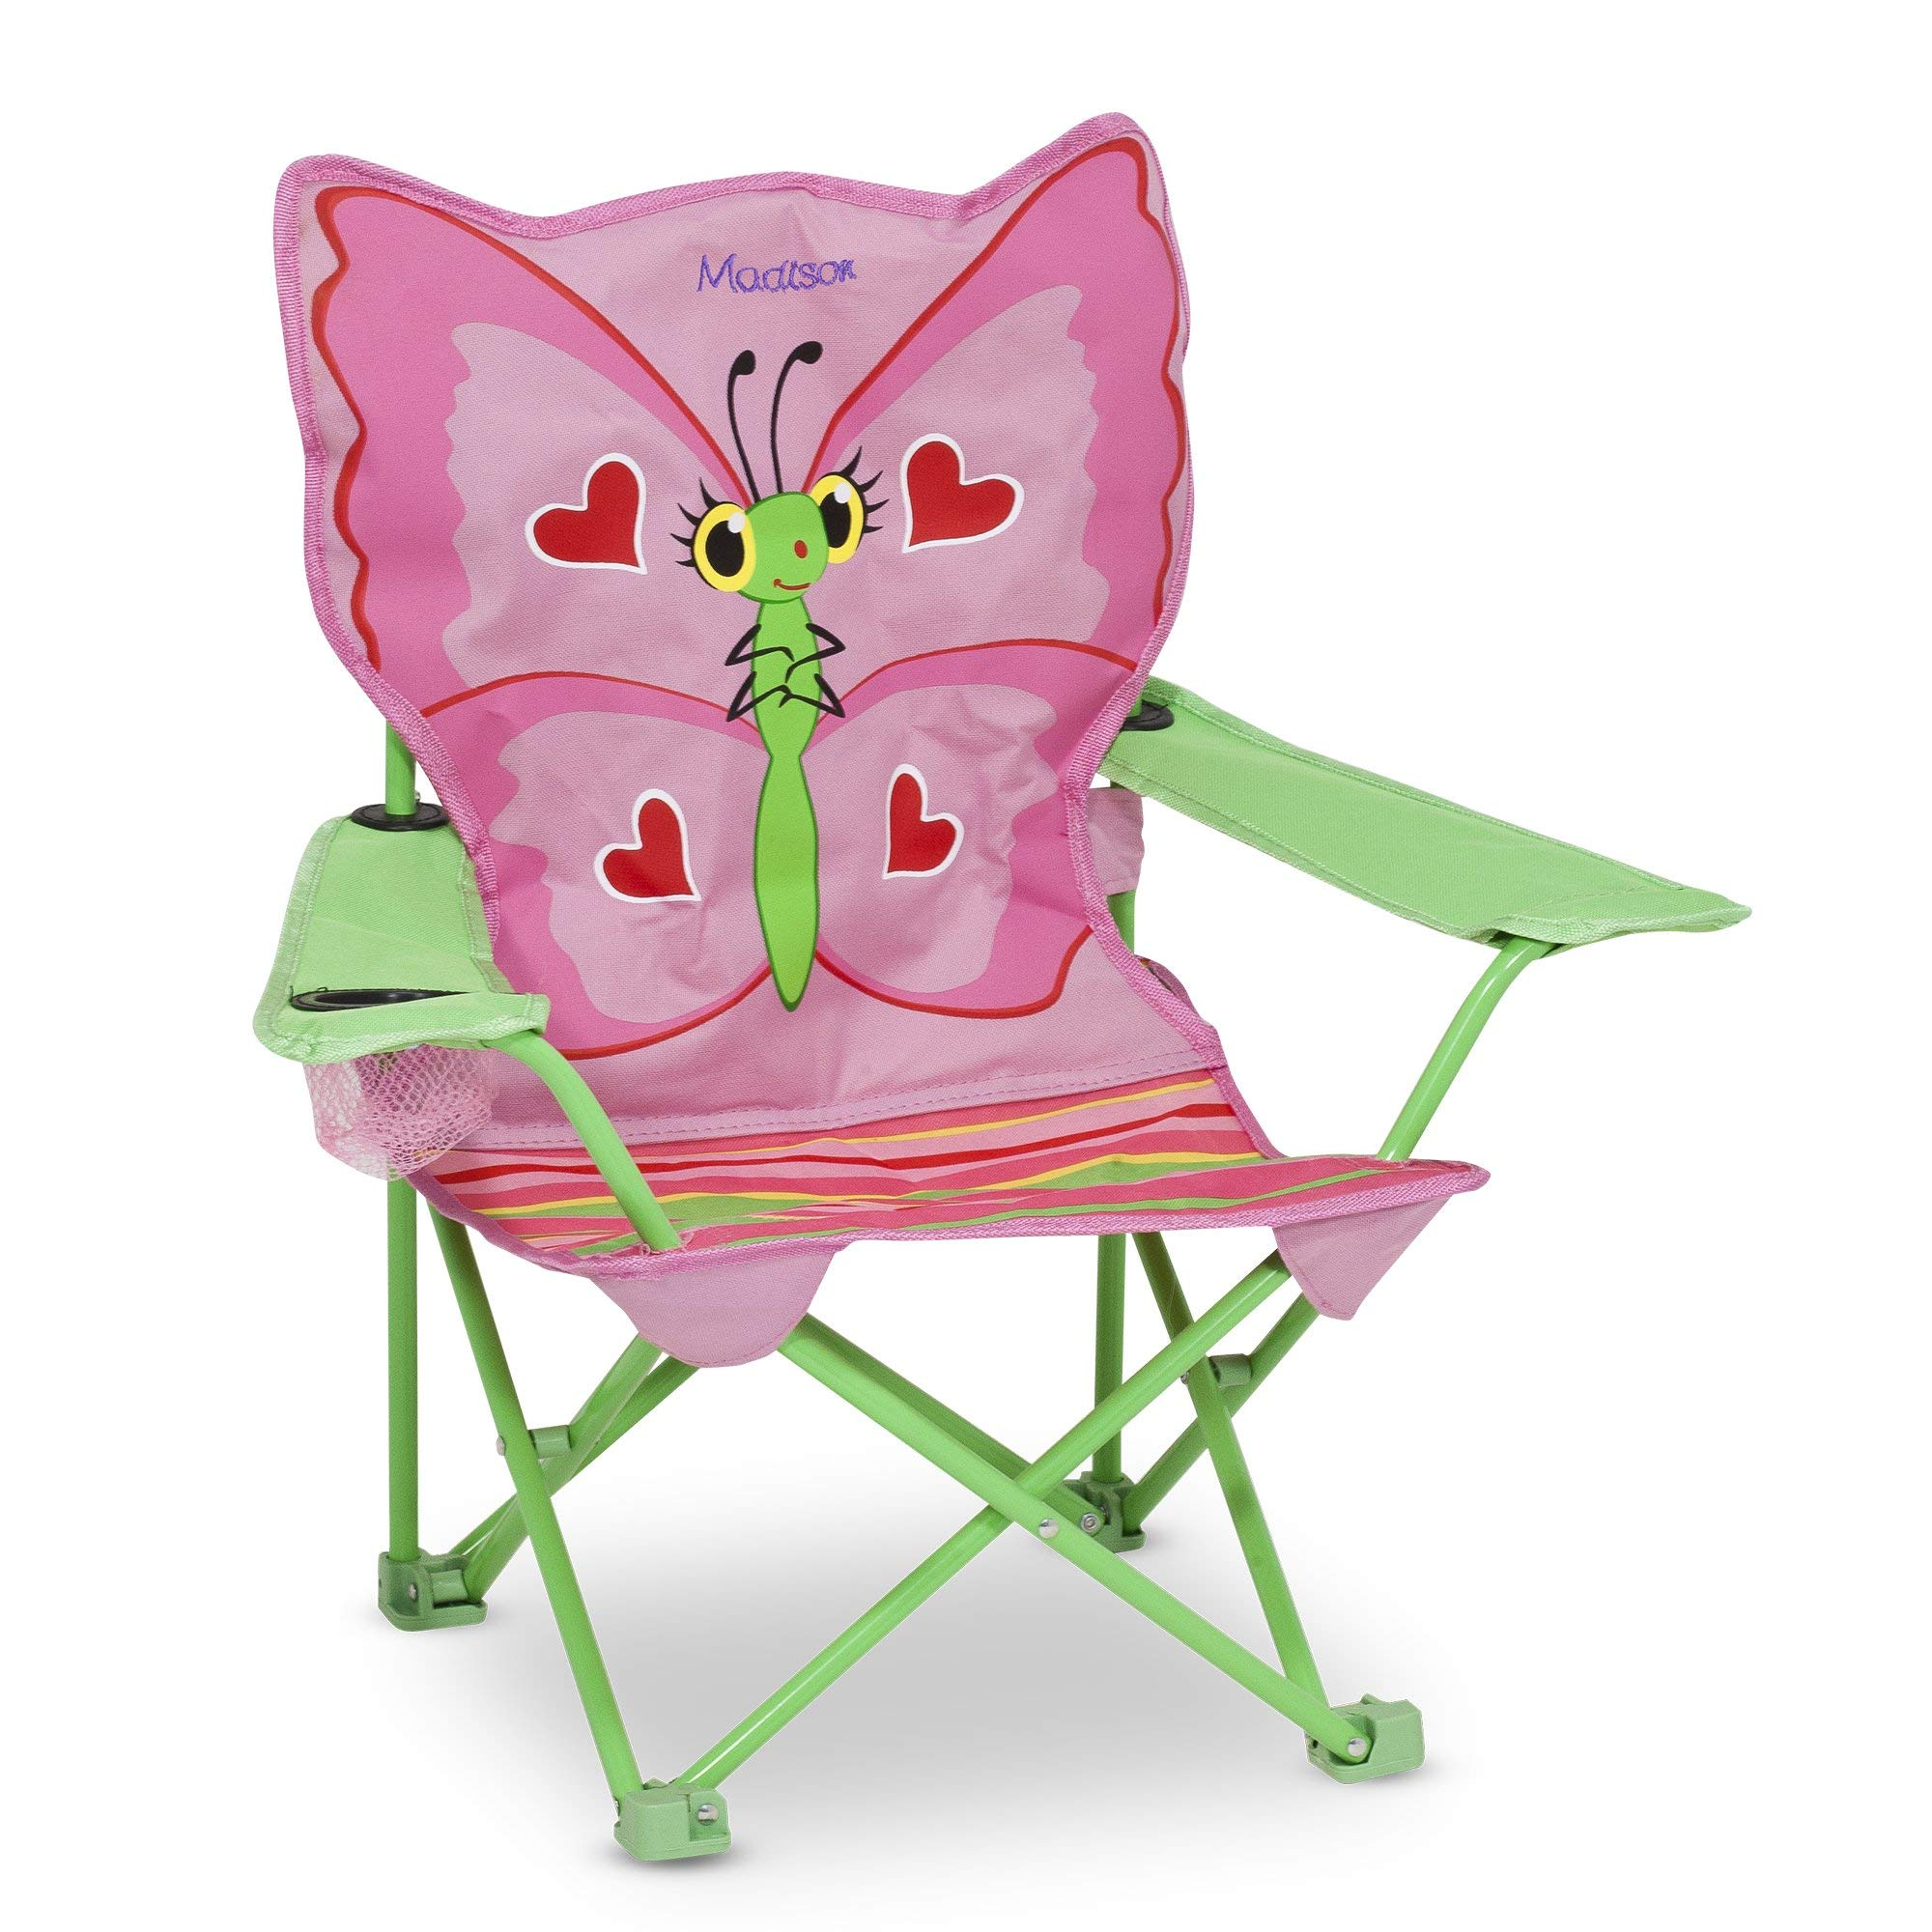 Melissa & Doug Personalized Sunny Patch Bella Butterfly Outdoor Folding Lawn & Camping Chair (Renewed) by Melissa & Doug (Image #1)